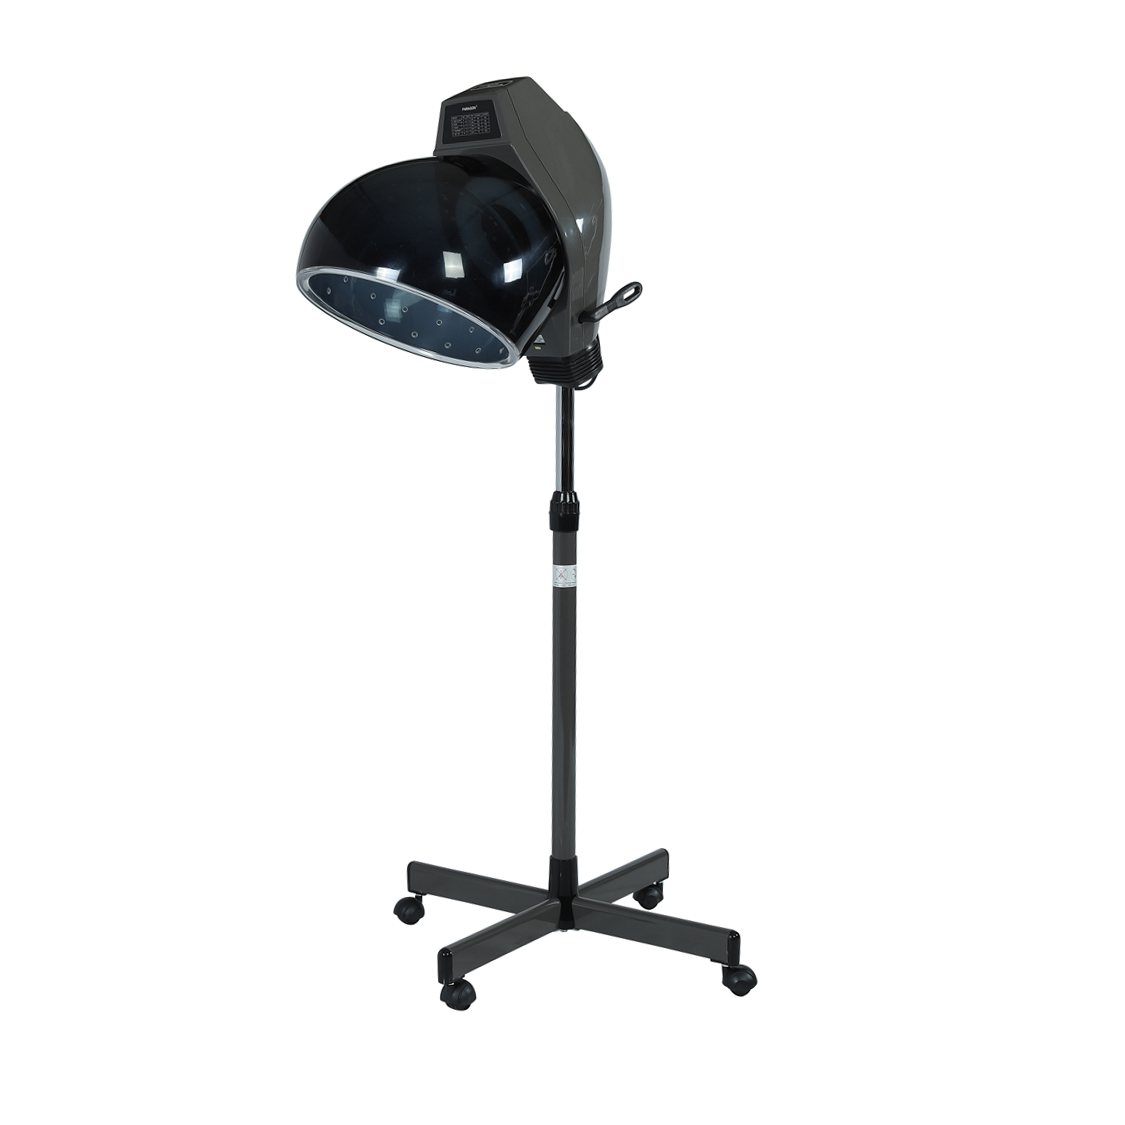 Lumashine-2 Far-Infrared Color Processor Rollerstand - Garfield Commercial Enterprises Salon Equipment Spa Furniture Barber Chair Luxury